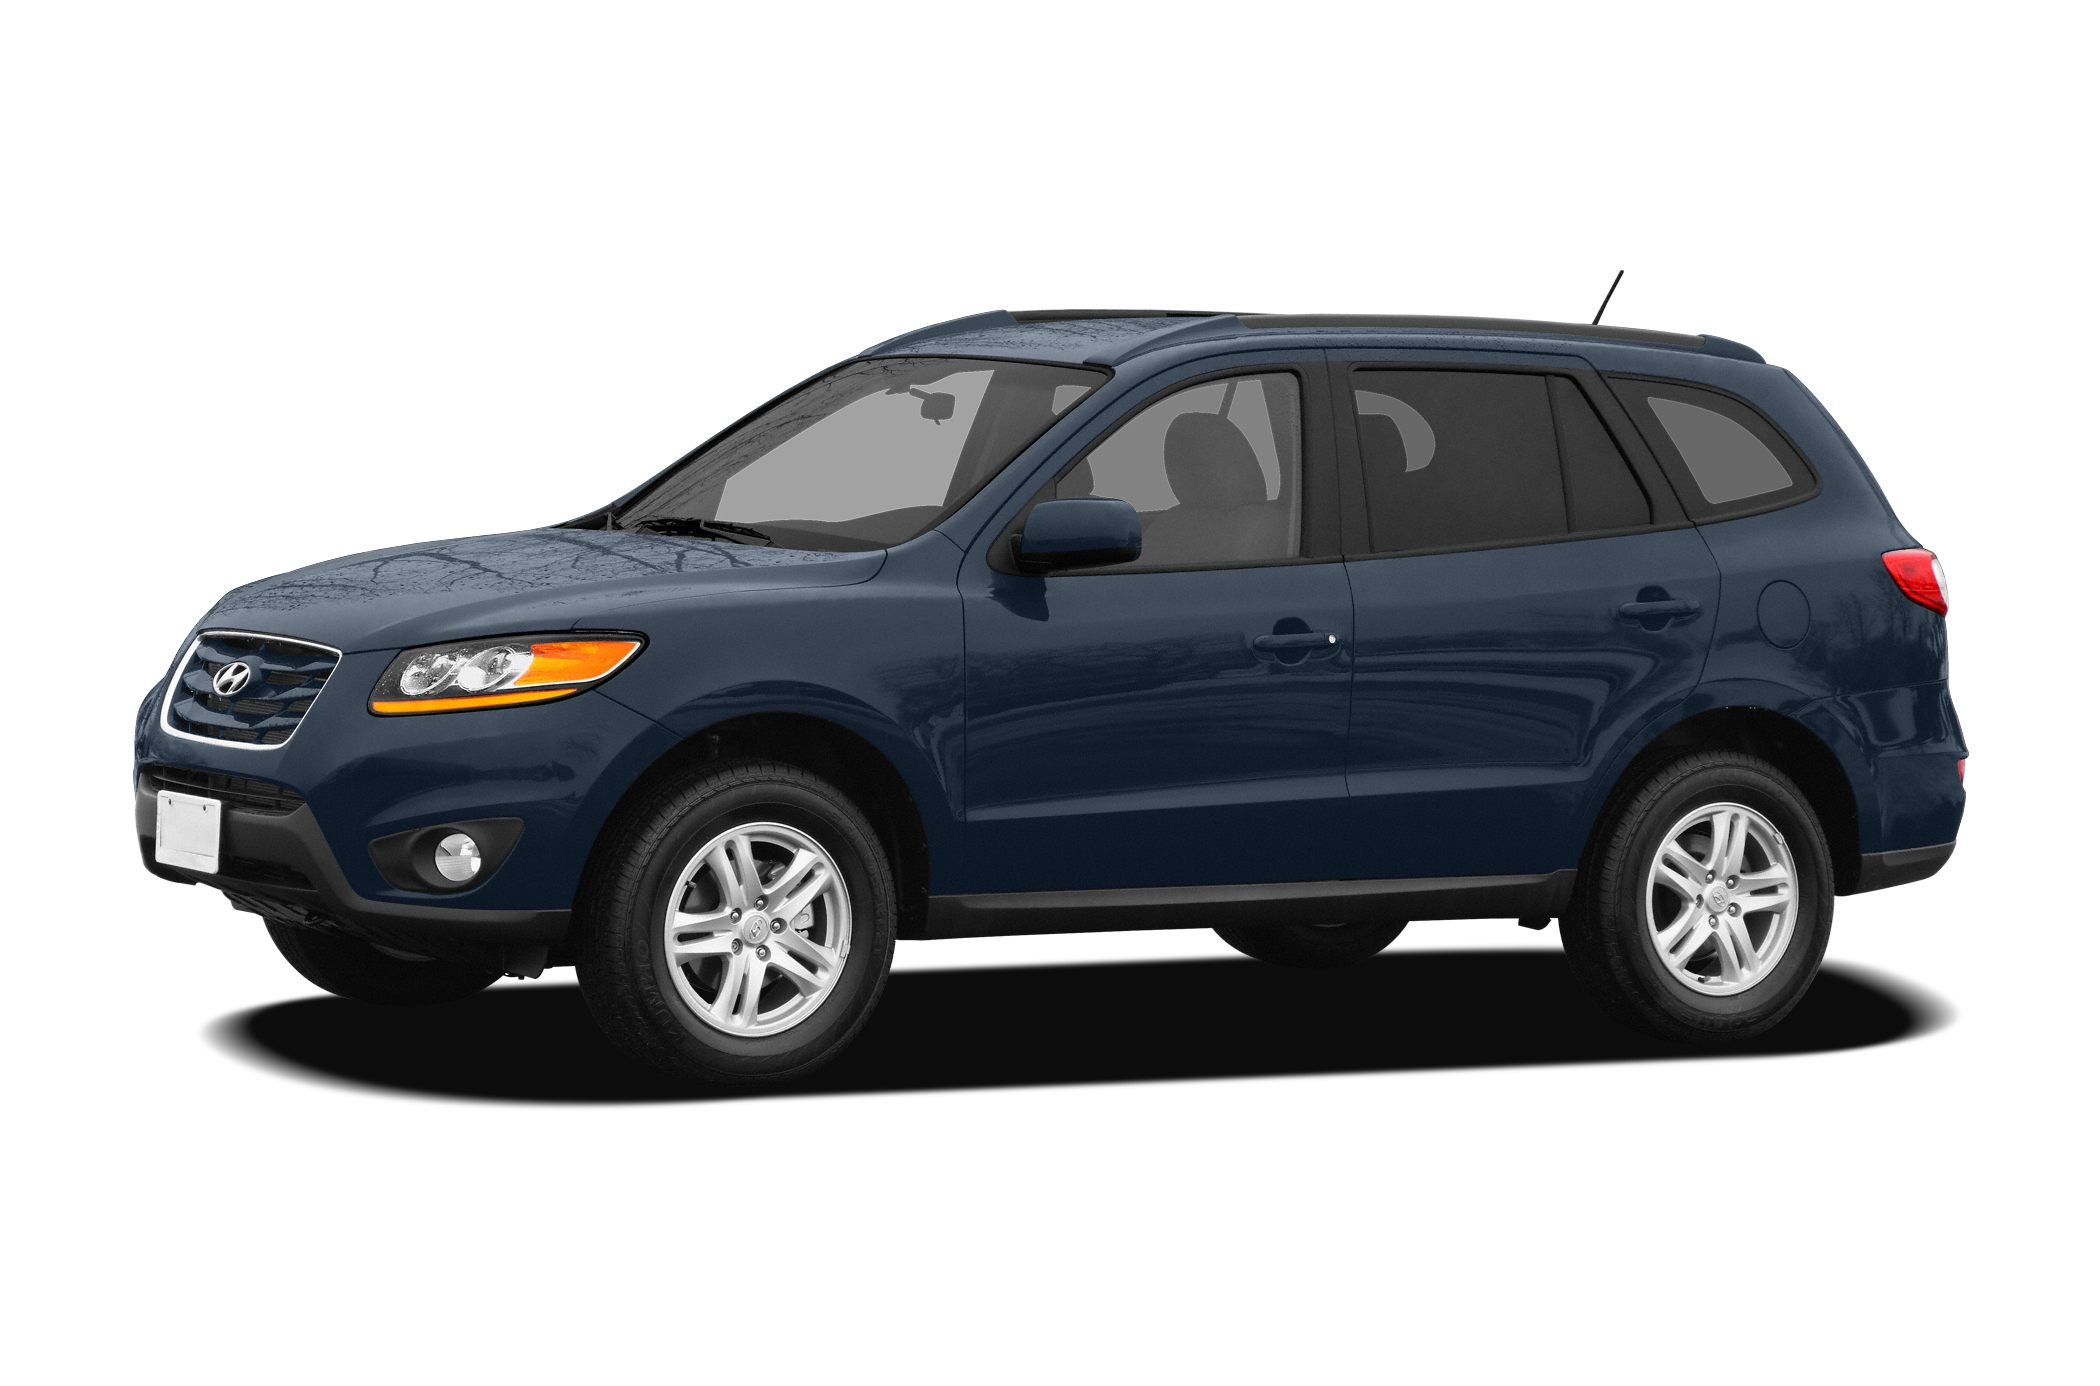 2010 Hyundai Santa Fe GLS FREE FIRST YEAR MAINTENANCE and NO ACCIDENT HISTORY ON CARFAX Clo